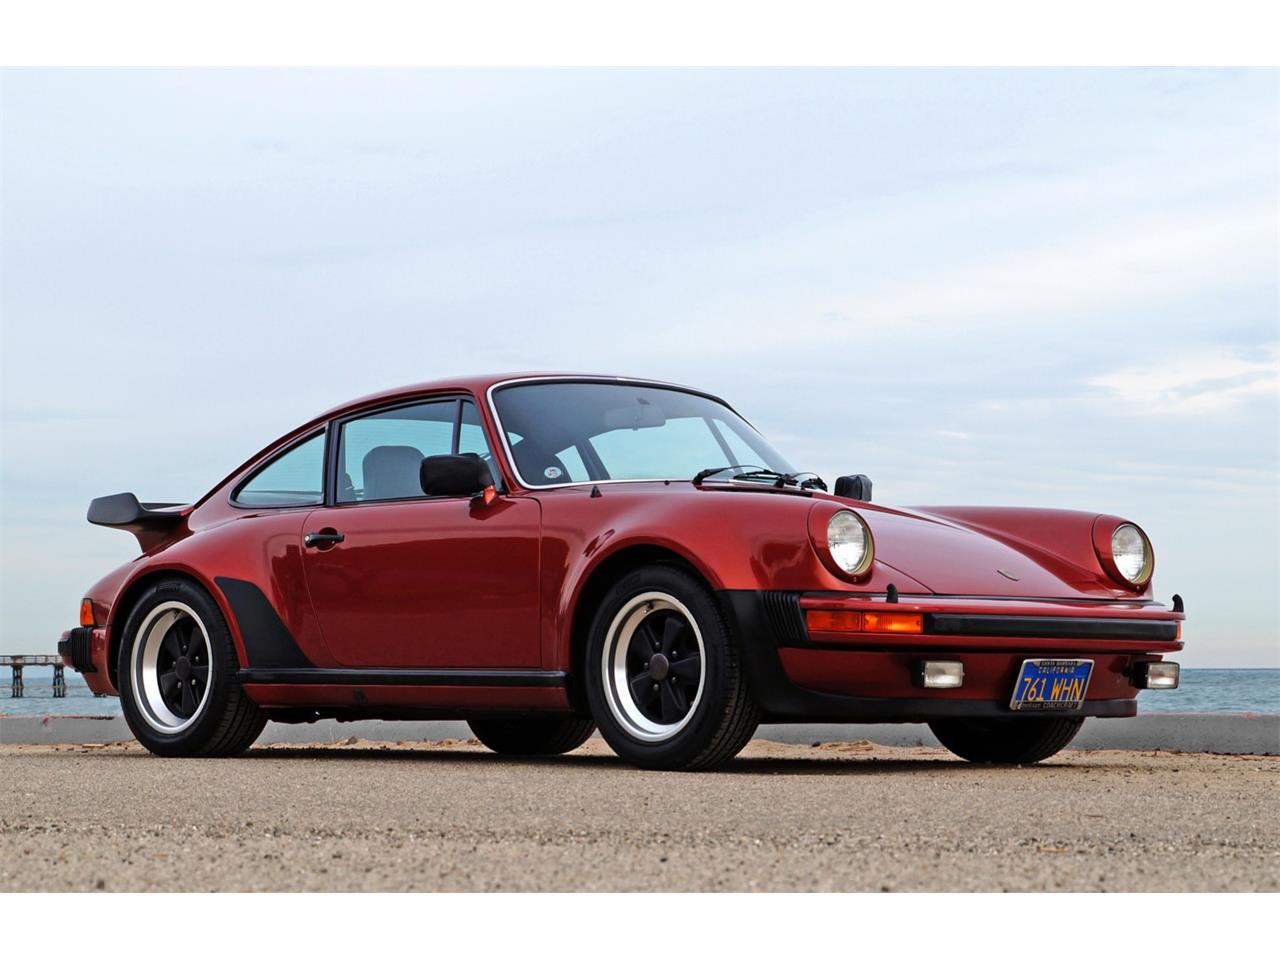 Large Picture of 1978 Porsche 930 Turbo Auction Vehicle Offered by Bring A Trailer - Q25Q